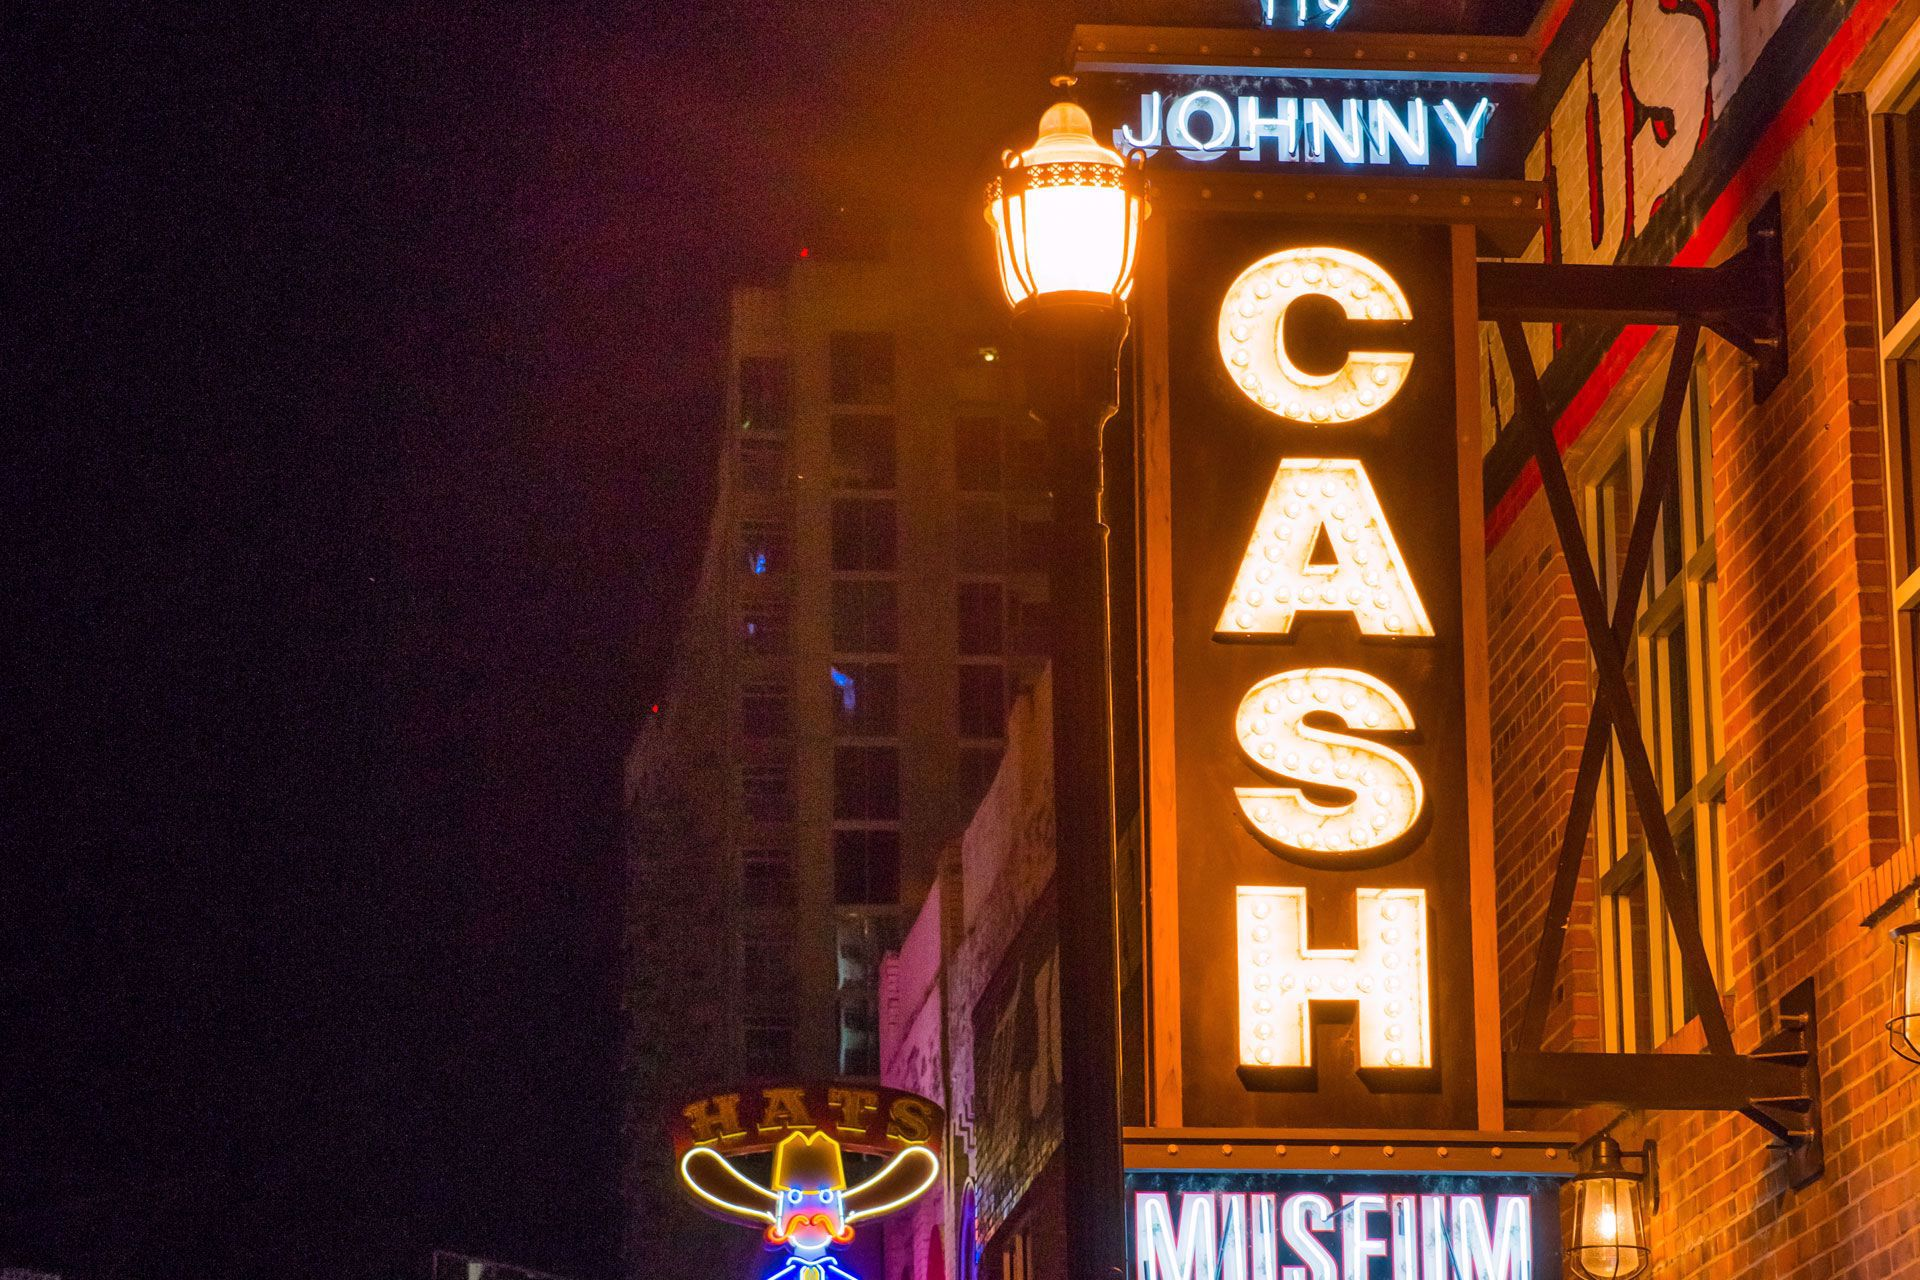 See Nashville's notable landmarks illuminated